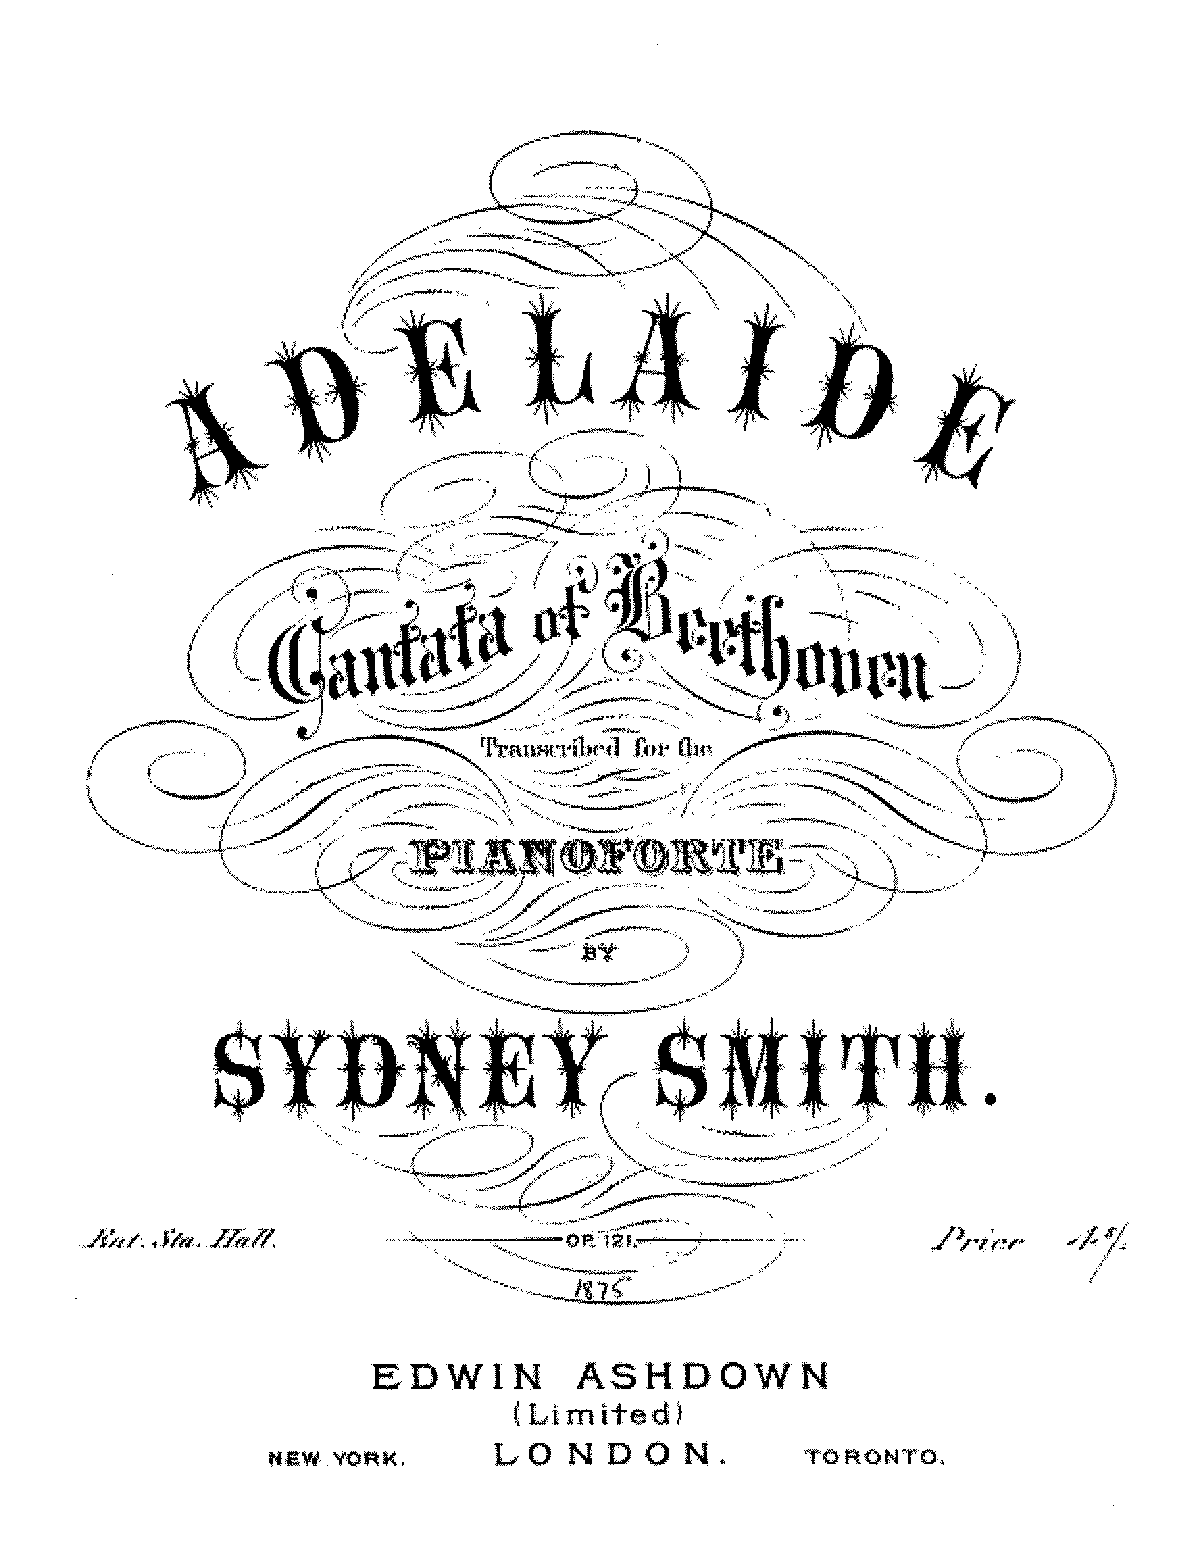 PMLP113132-Smith, Sydney op.121 beethoven adelaide.pdf